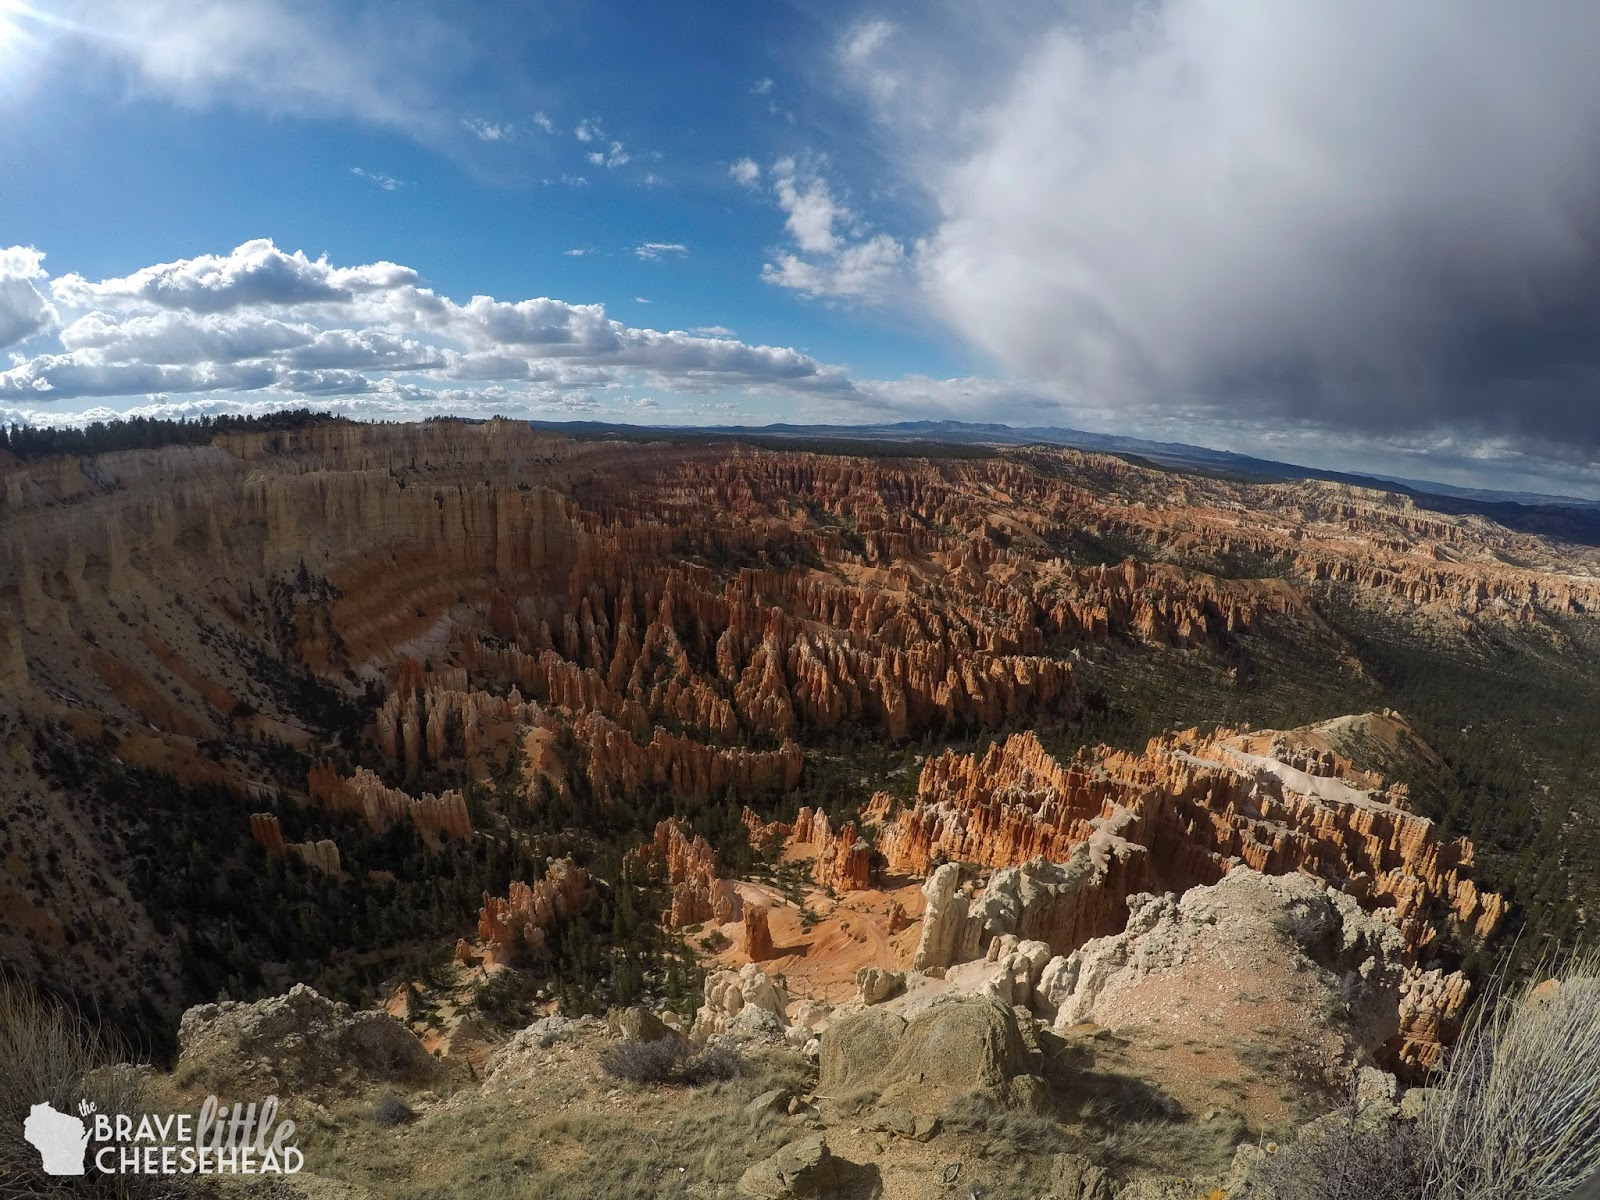 One Day in Bryce Canyon National Park | The Brave Little Cheesehead at bravelittlecheesehead.com